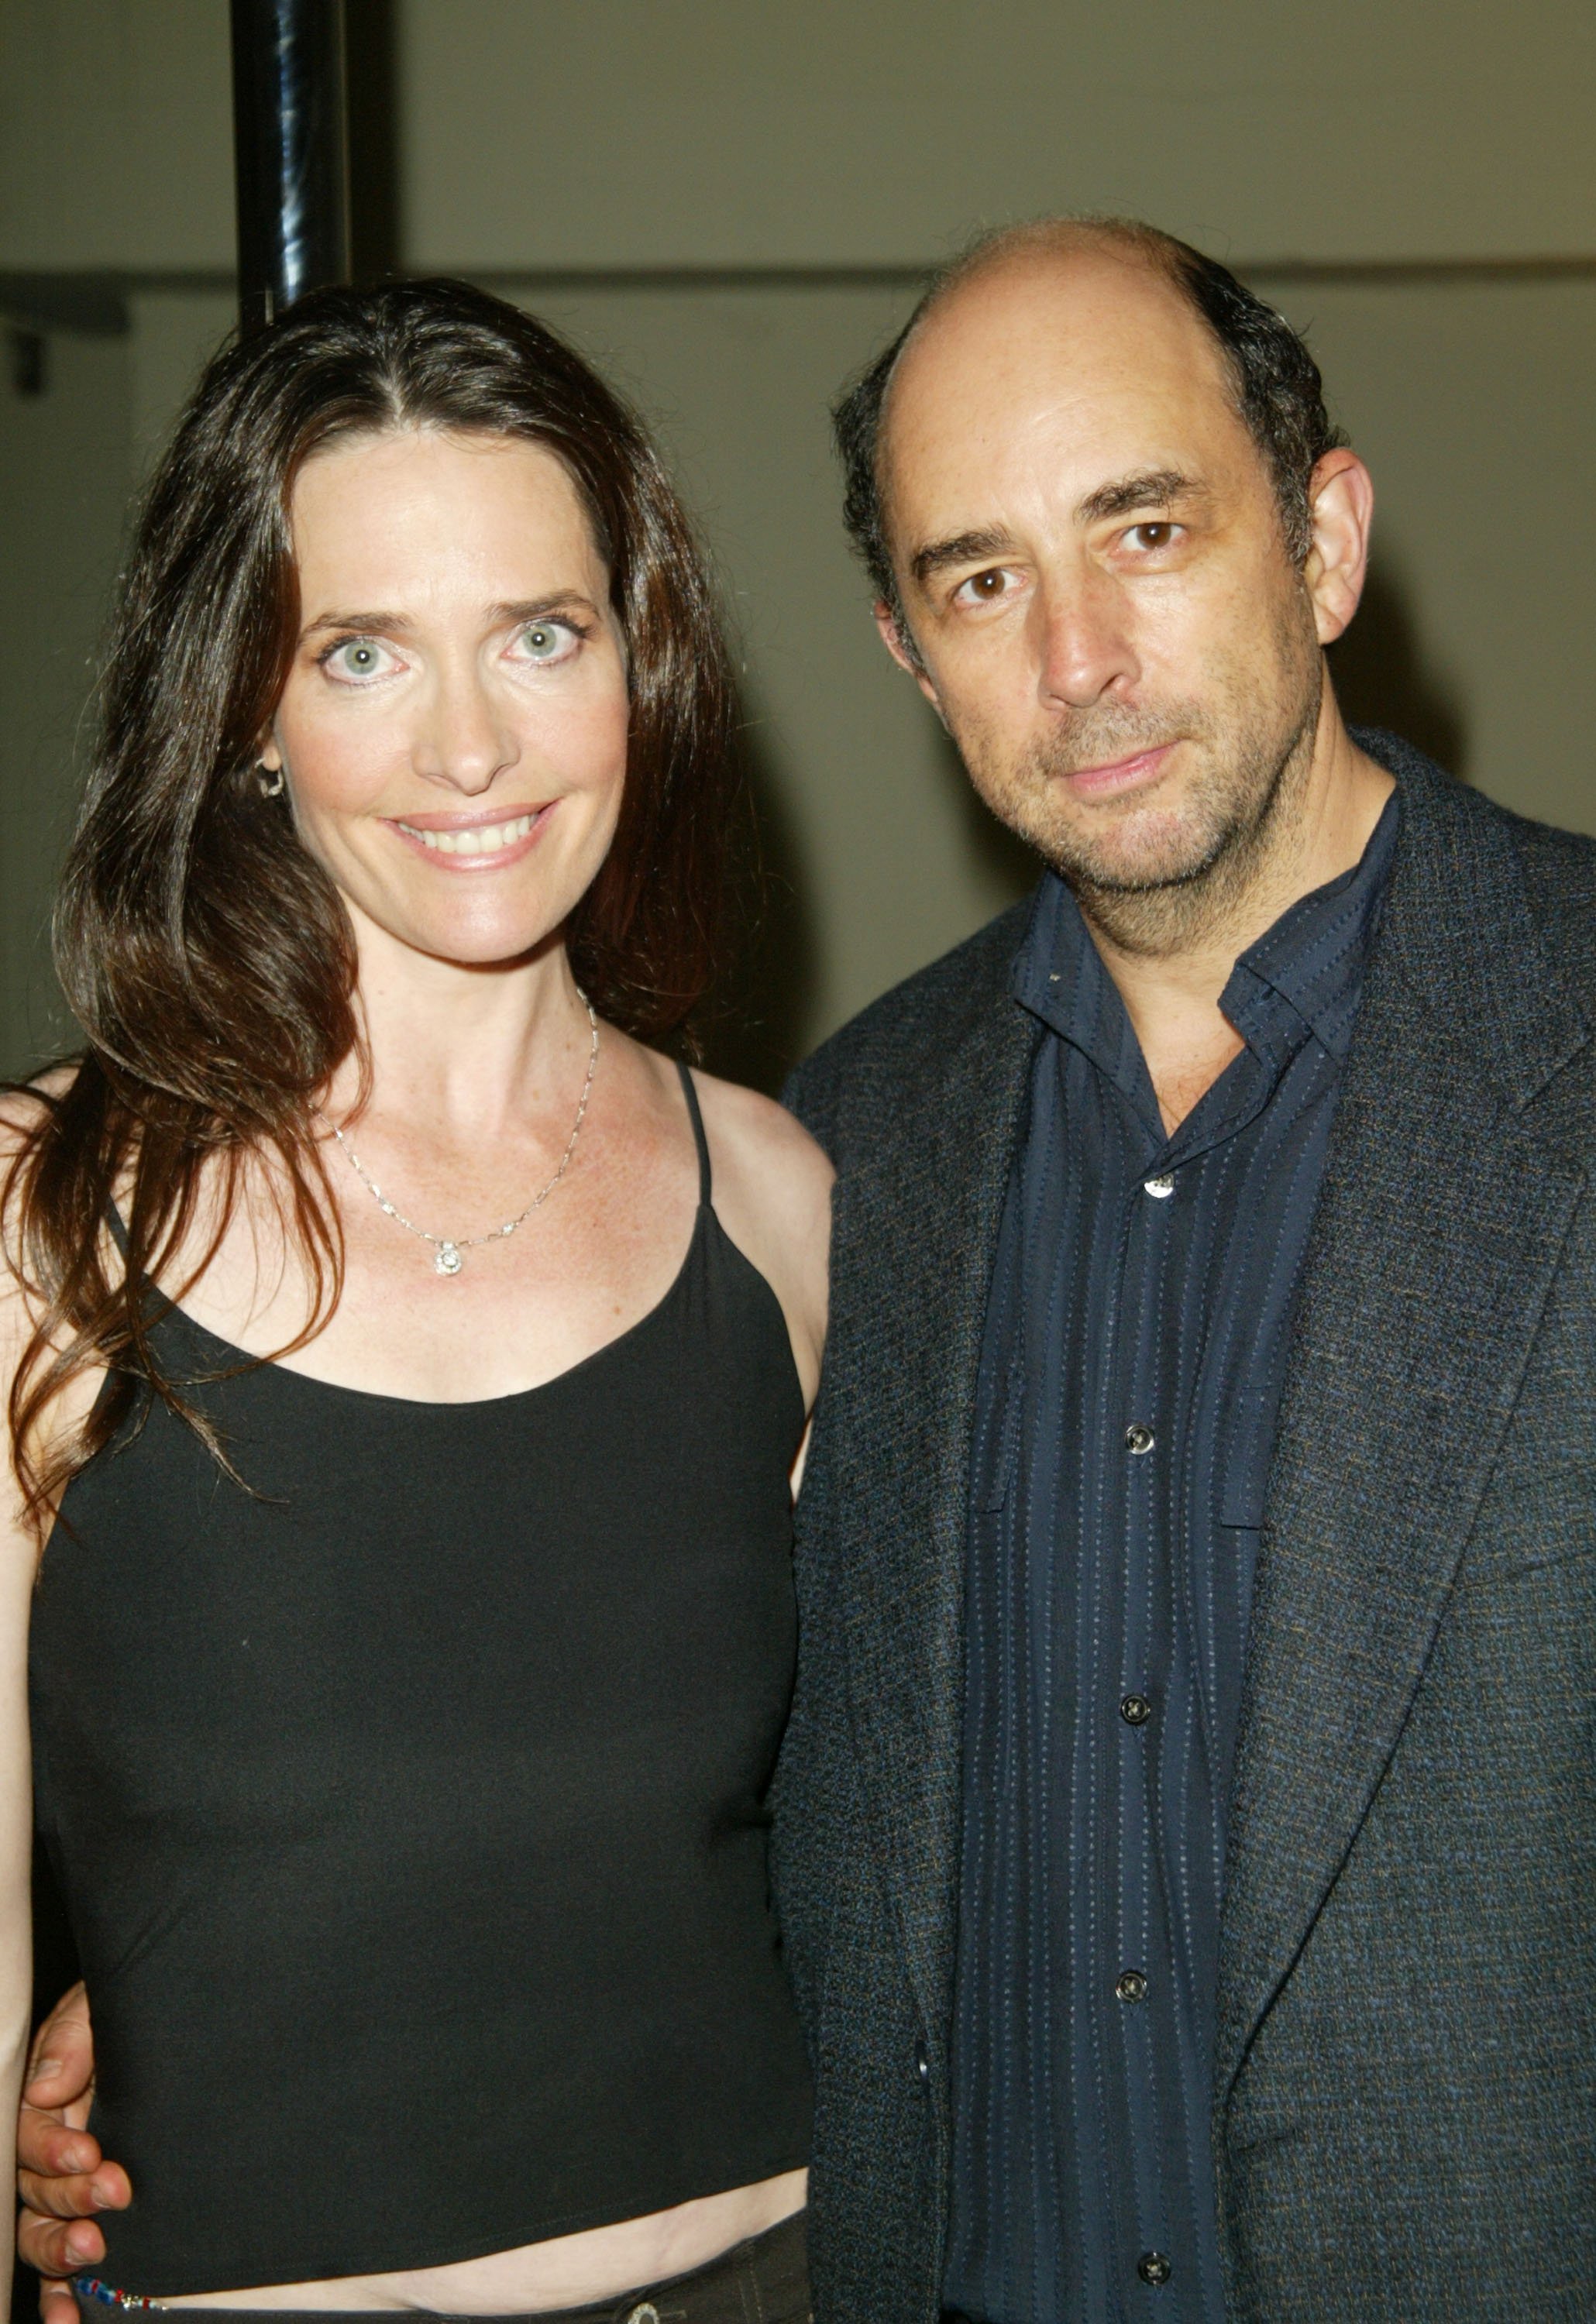 Sheila Kelley and Richard Schiff attend the opening party for Kelley's Factor Studio in Los Angeles, California on June 14, 2003 | Photo: Getty Images